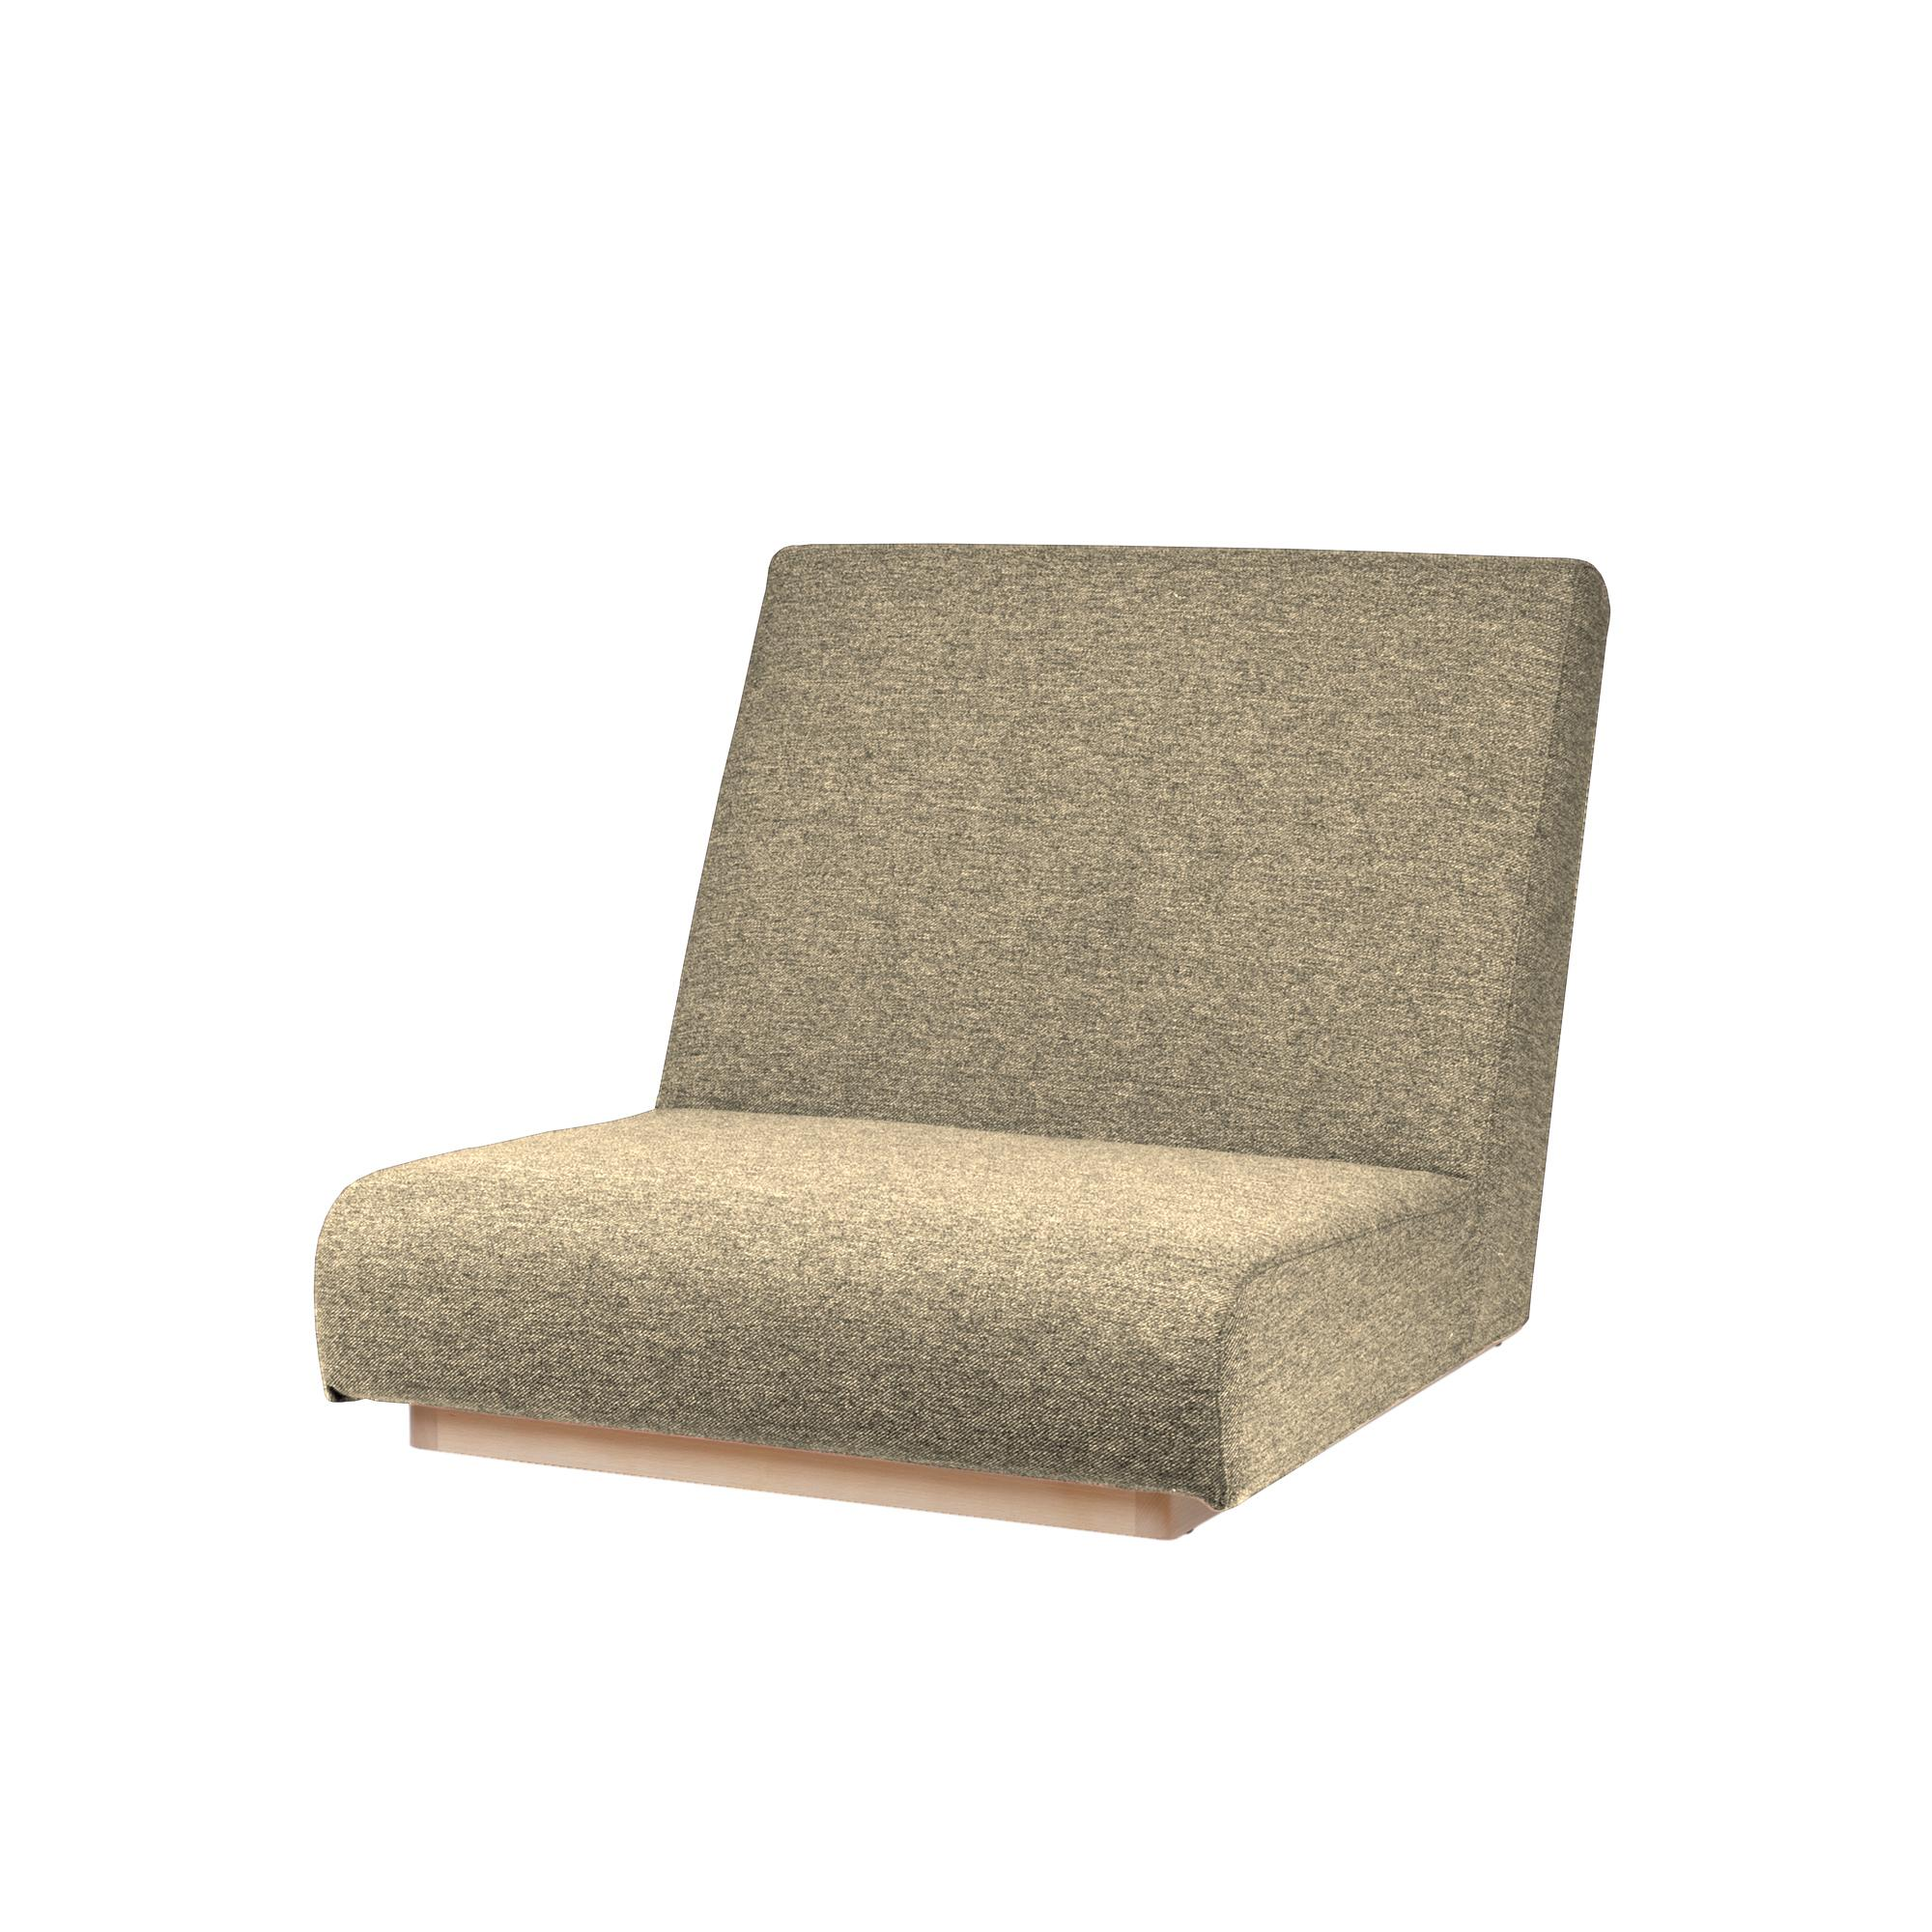 form low sofa_BE.jpg